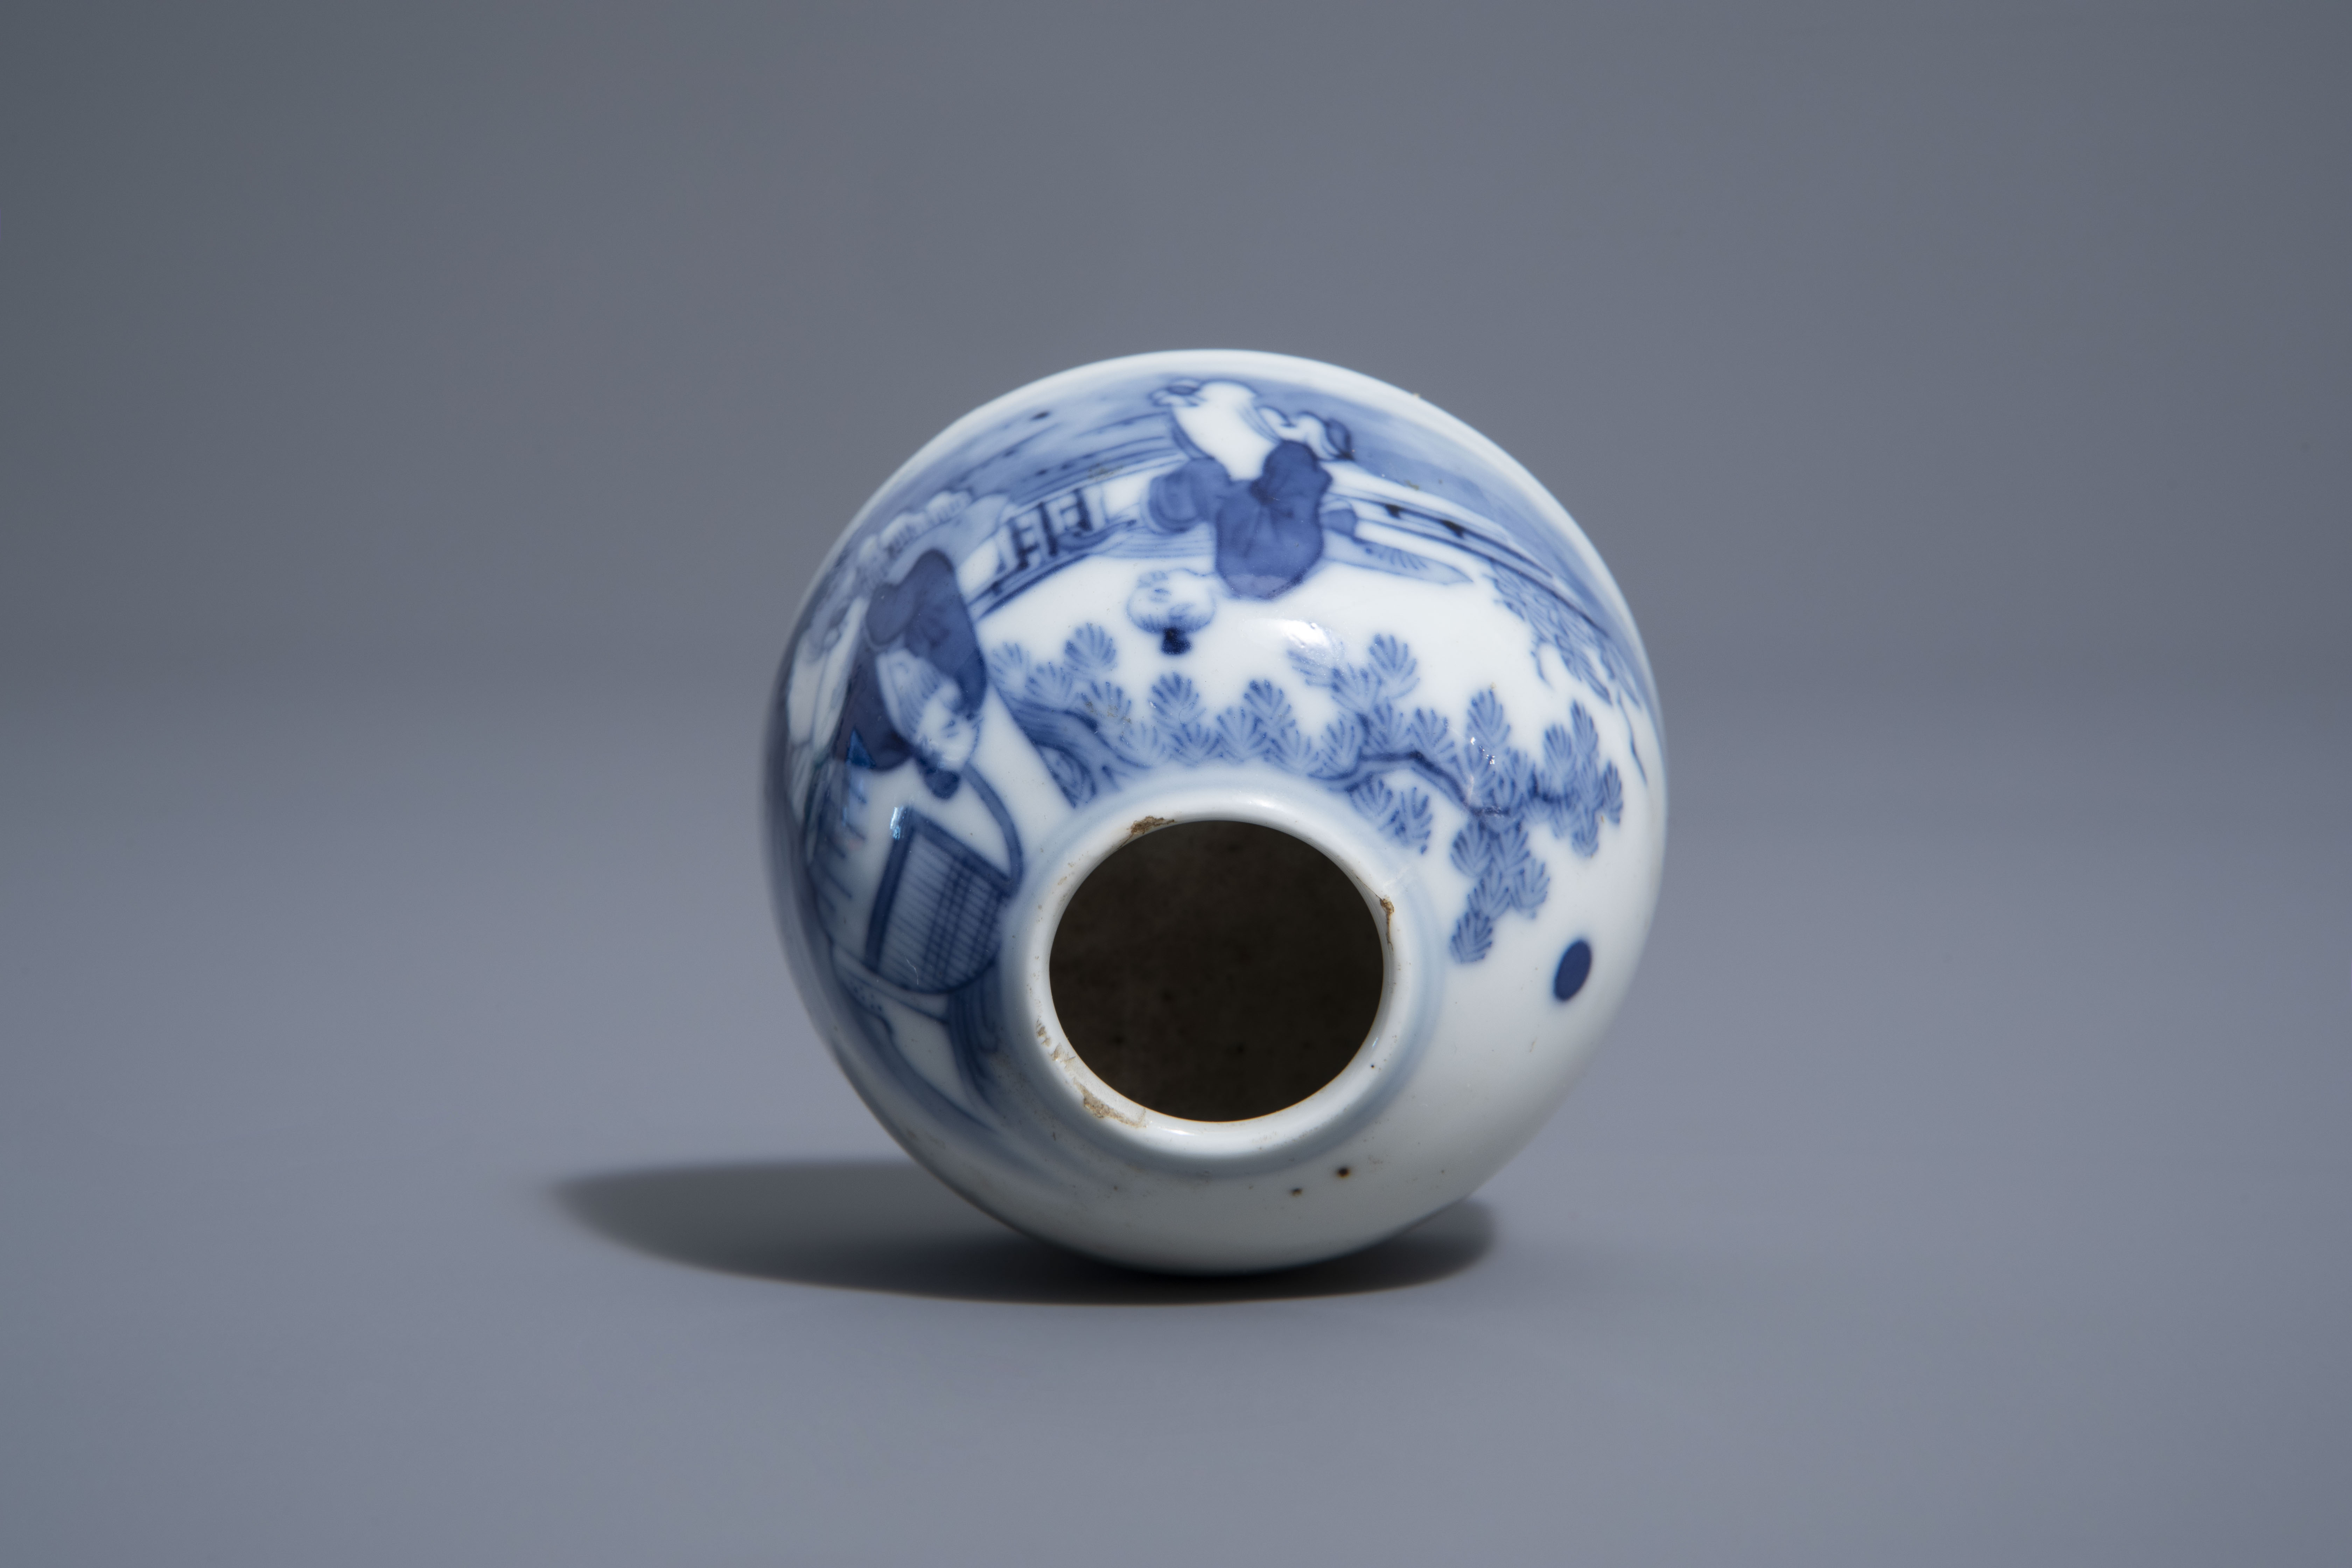 A Chinese blue & white crackle glazed vase, a monochrome green vase and a brushwasher, 19th/20th C. - Image 12 of 13